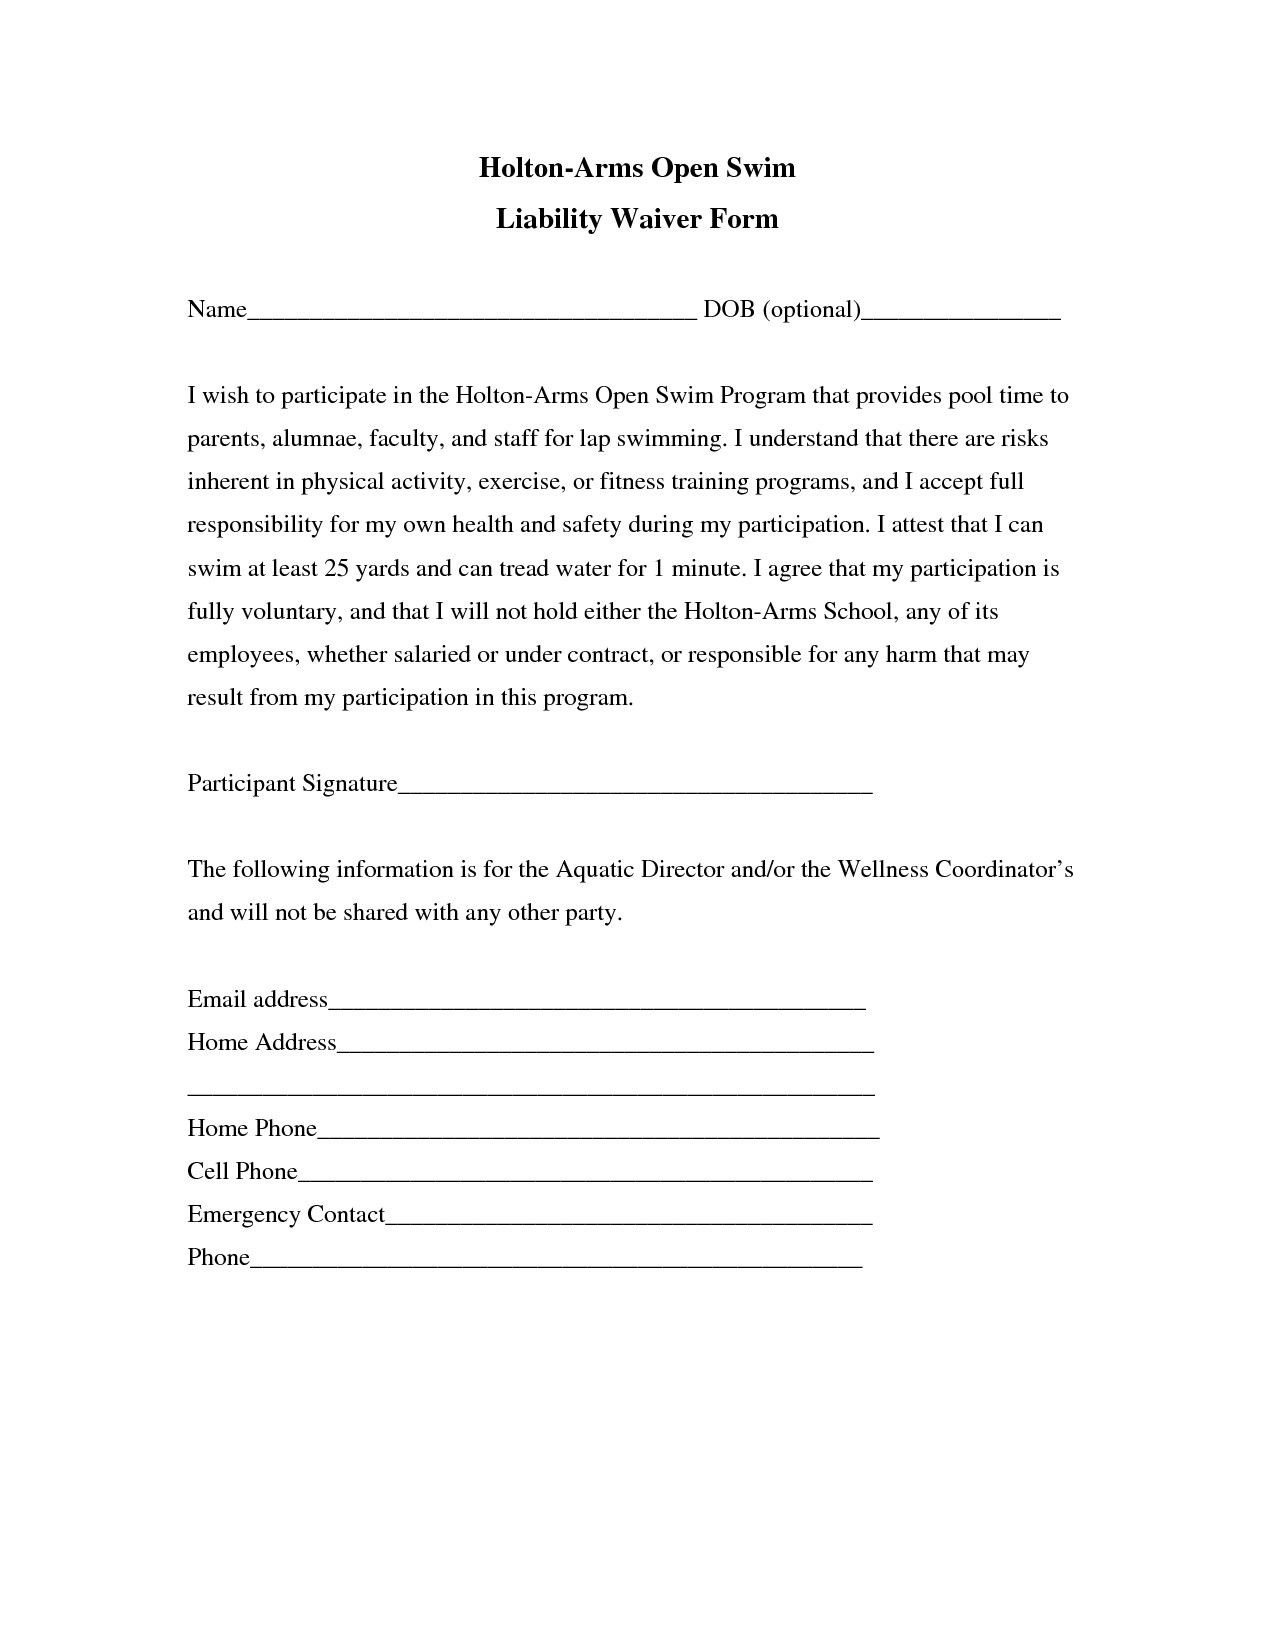 General Liability Waiver form Template Lovely Liability